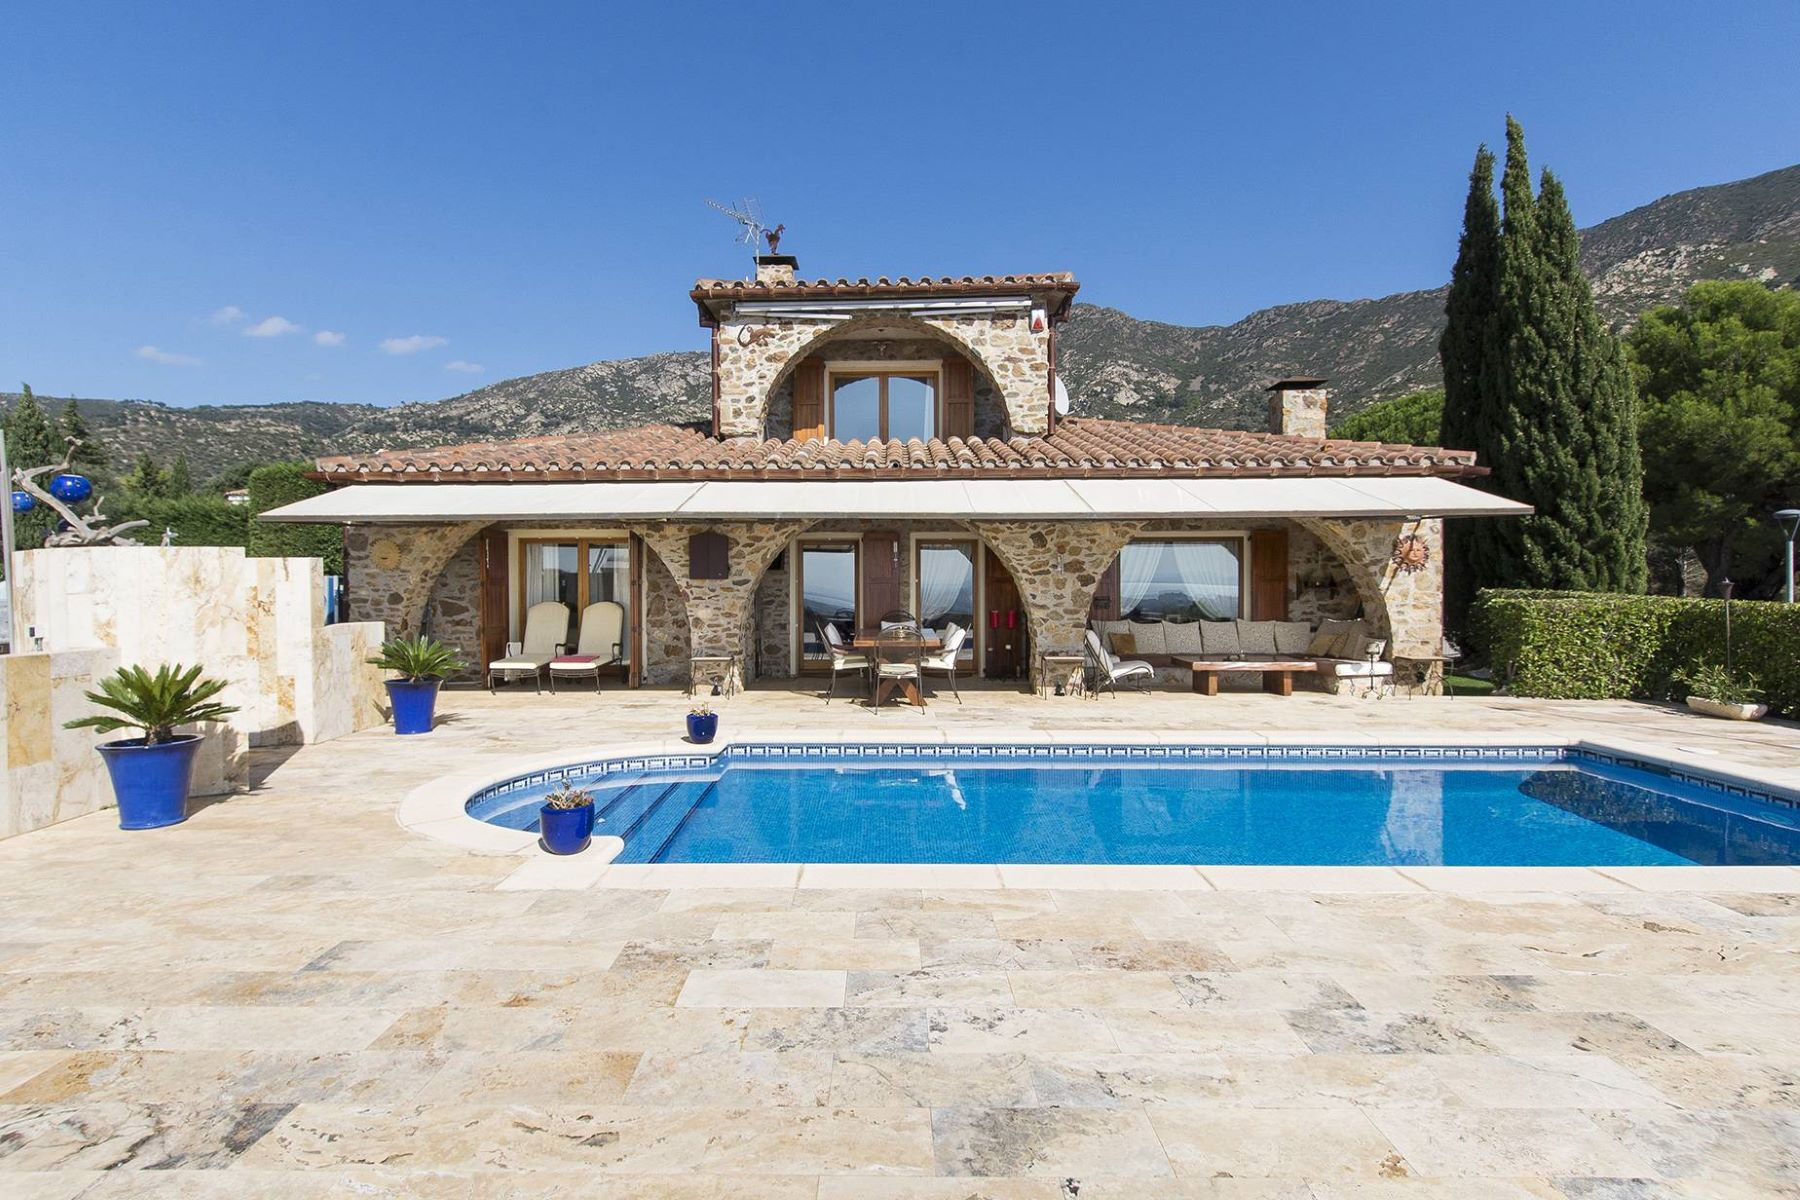 Single Family Home for Sale at Very nice House in Palau Saverdera Roses, Costa Brava 17480 Spain